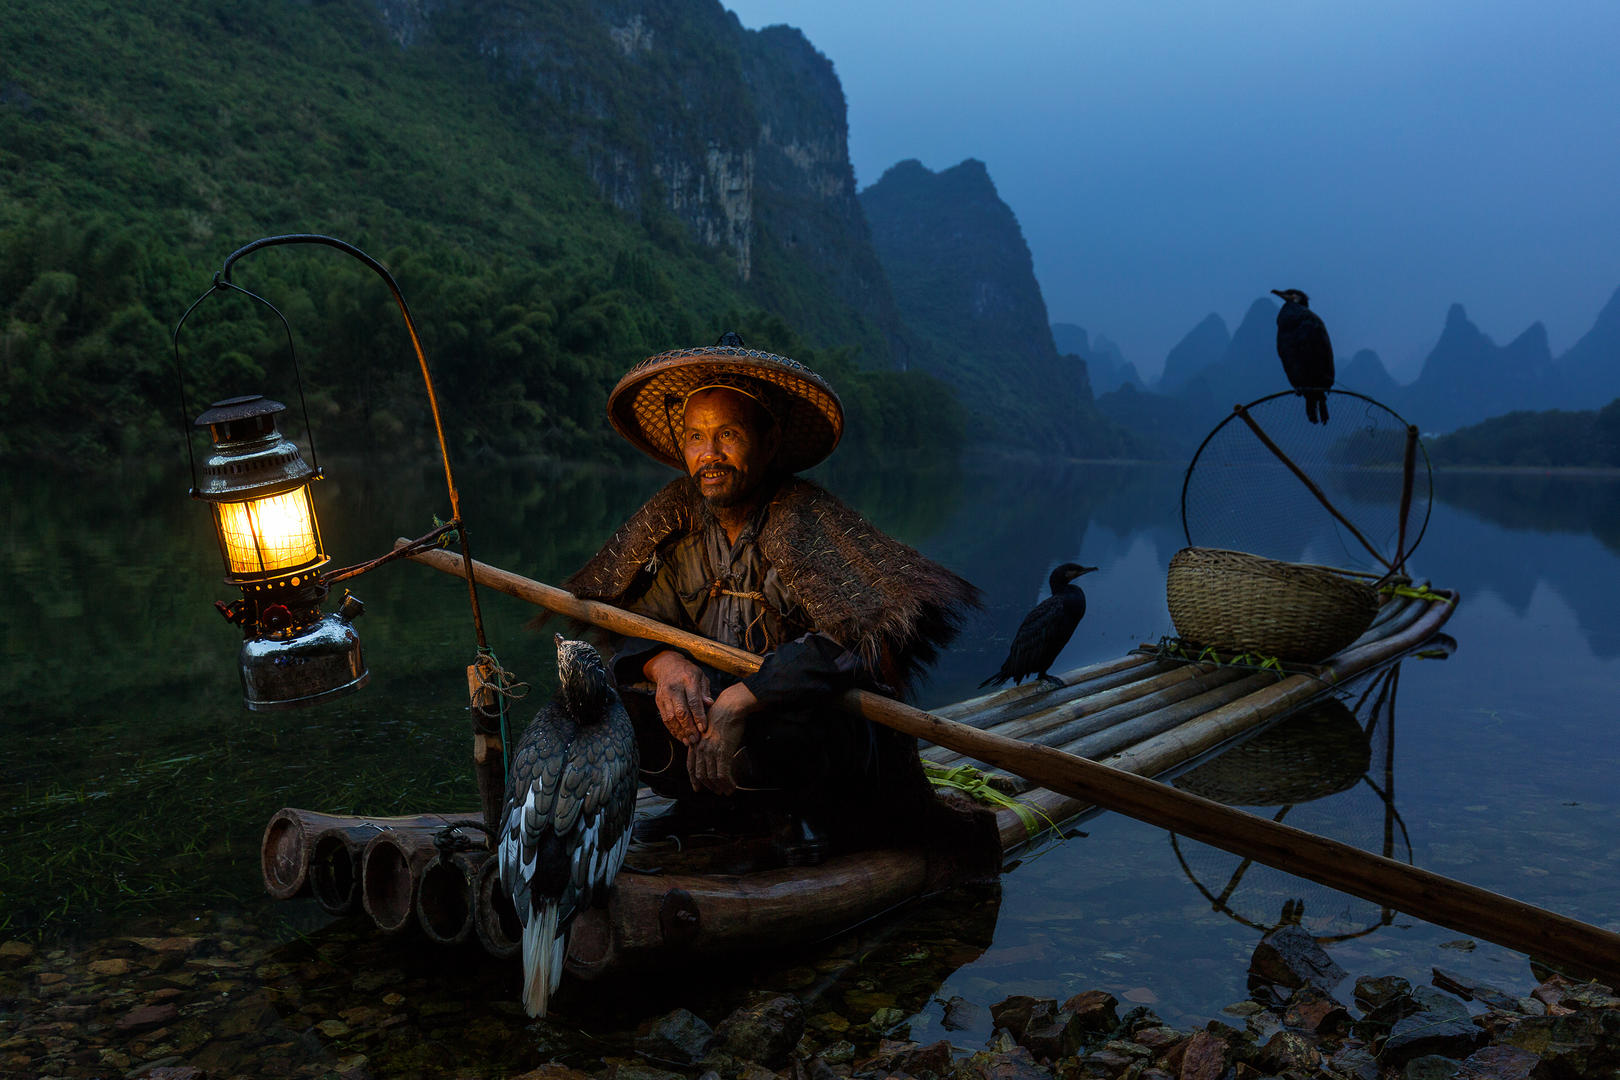 Cormorant Fisherman, © Duangmon C., Crowd 3rd, FIX Photo Festival Awards